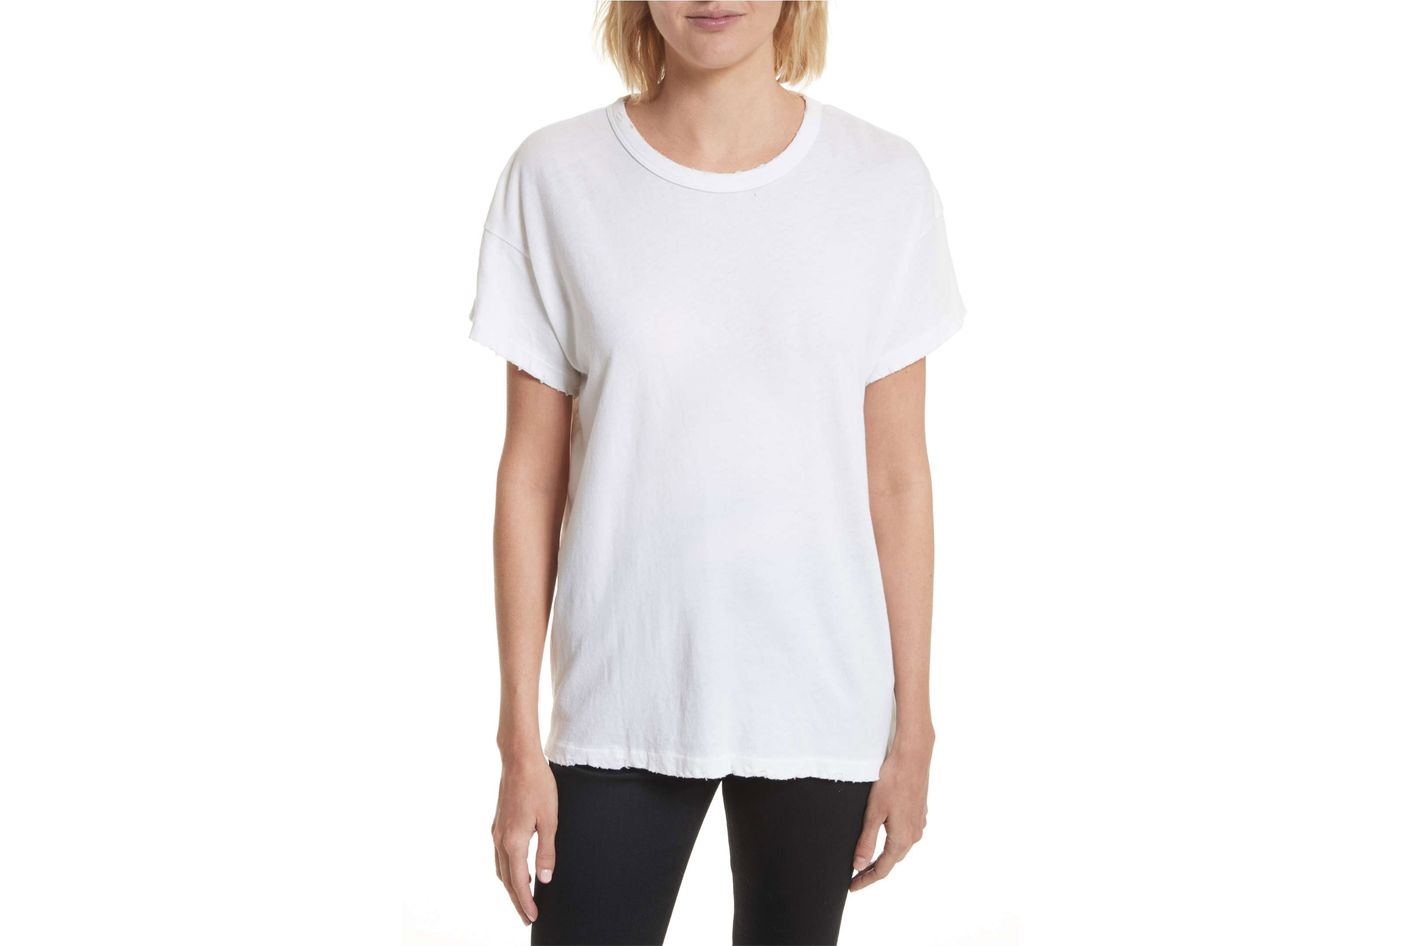 The Great Graphic Cotton Tee